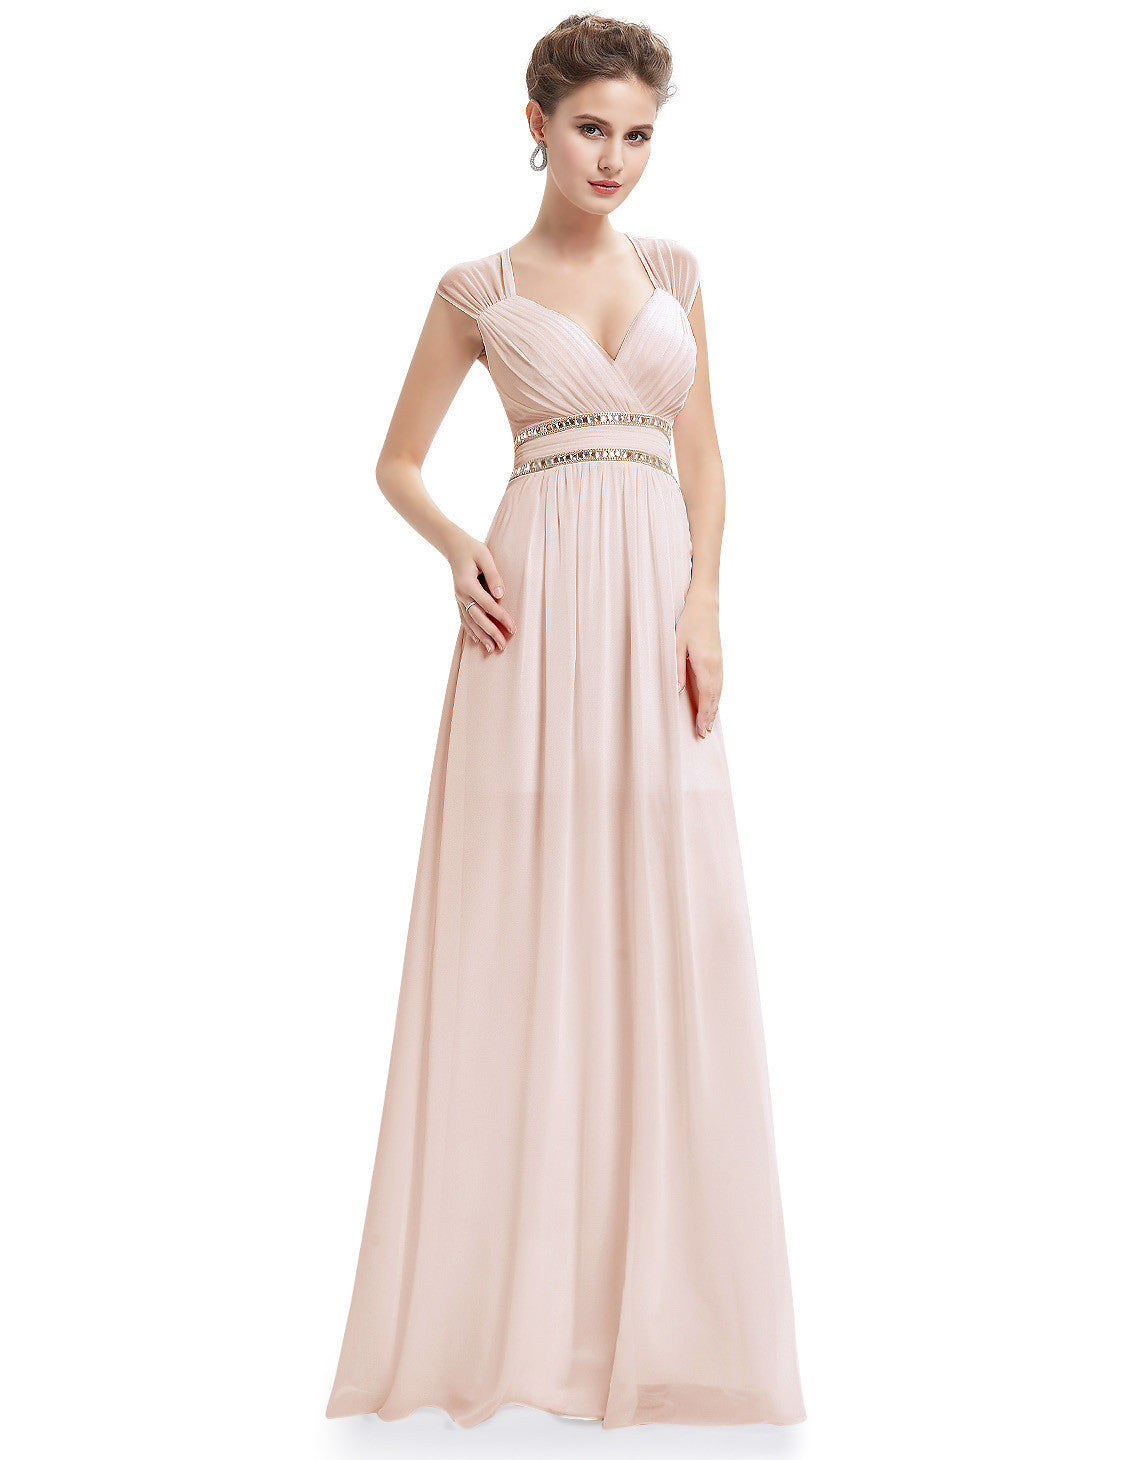 90594e27186 Obeige Elegant V-neck Long Evening Dress